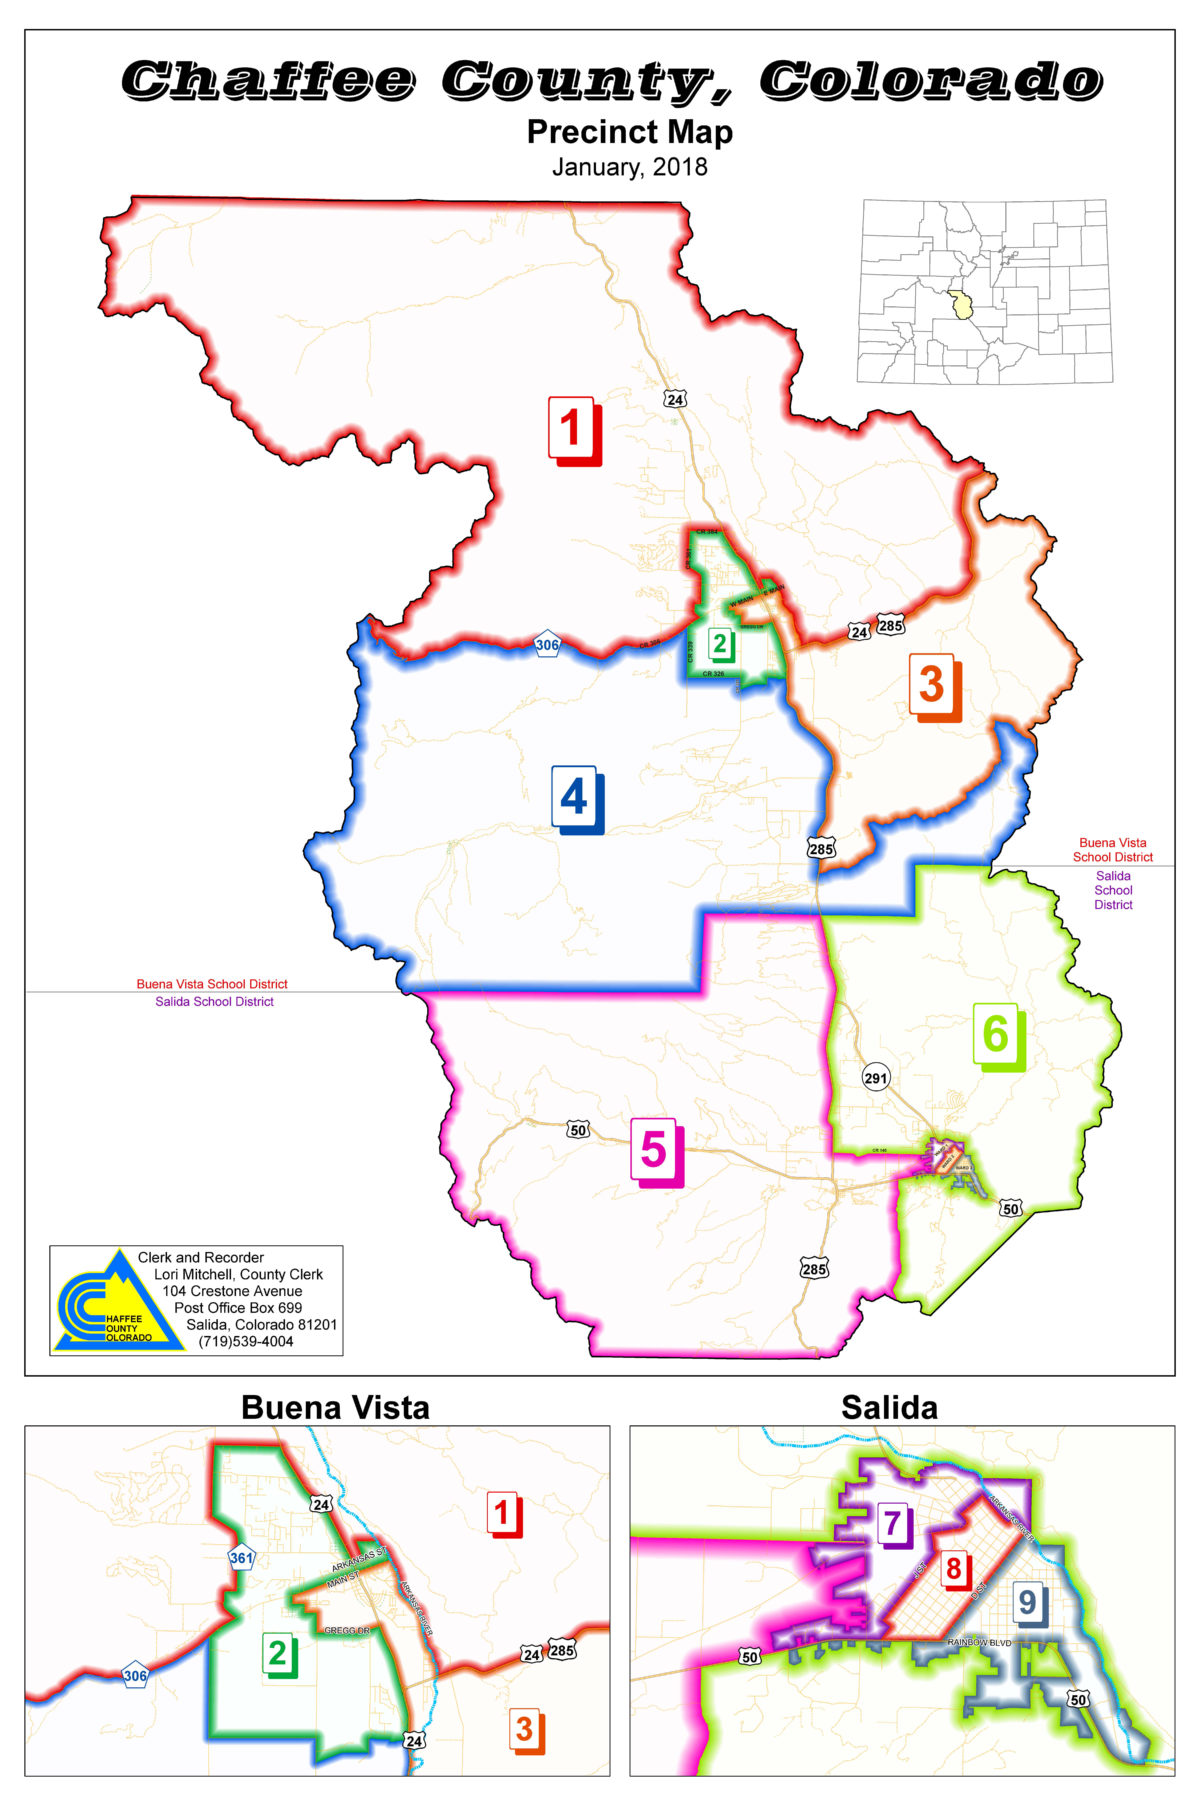 Chaffee County Ballot return at 21 percent - by Jan Wondra ... on pueblo colorado state map, breckenridge colorado state map, boulder colorado state map, salida colorado lodging,